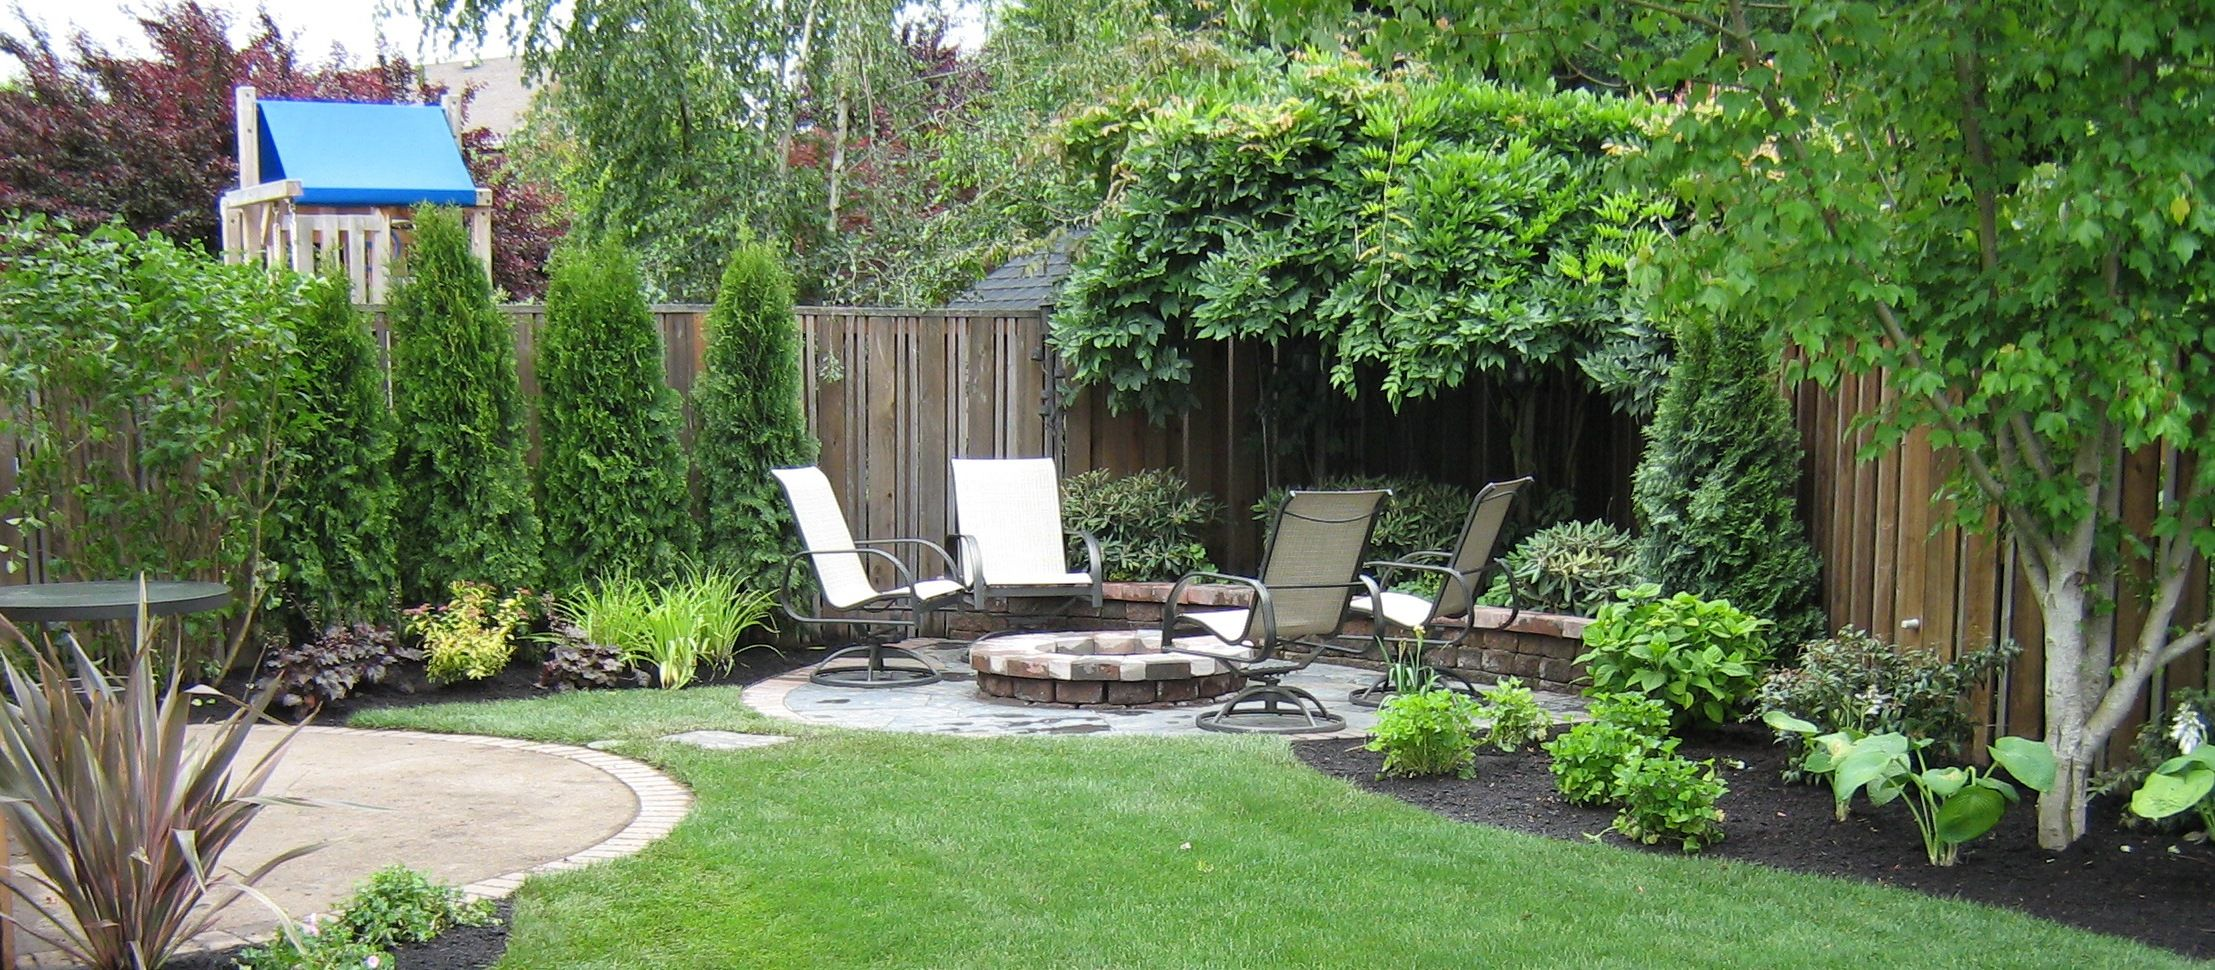 Small backyard landscaping ideas photos garden design for Beautiful garden ideas